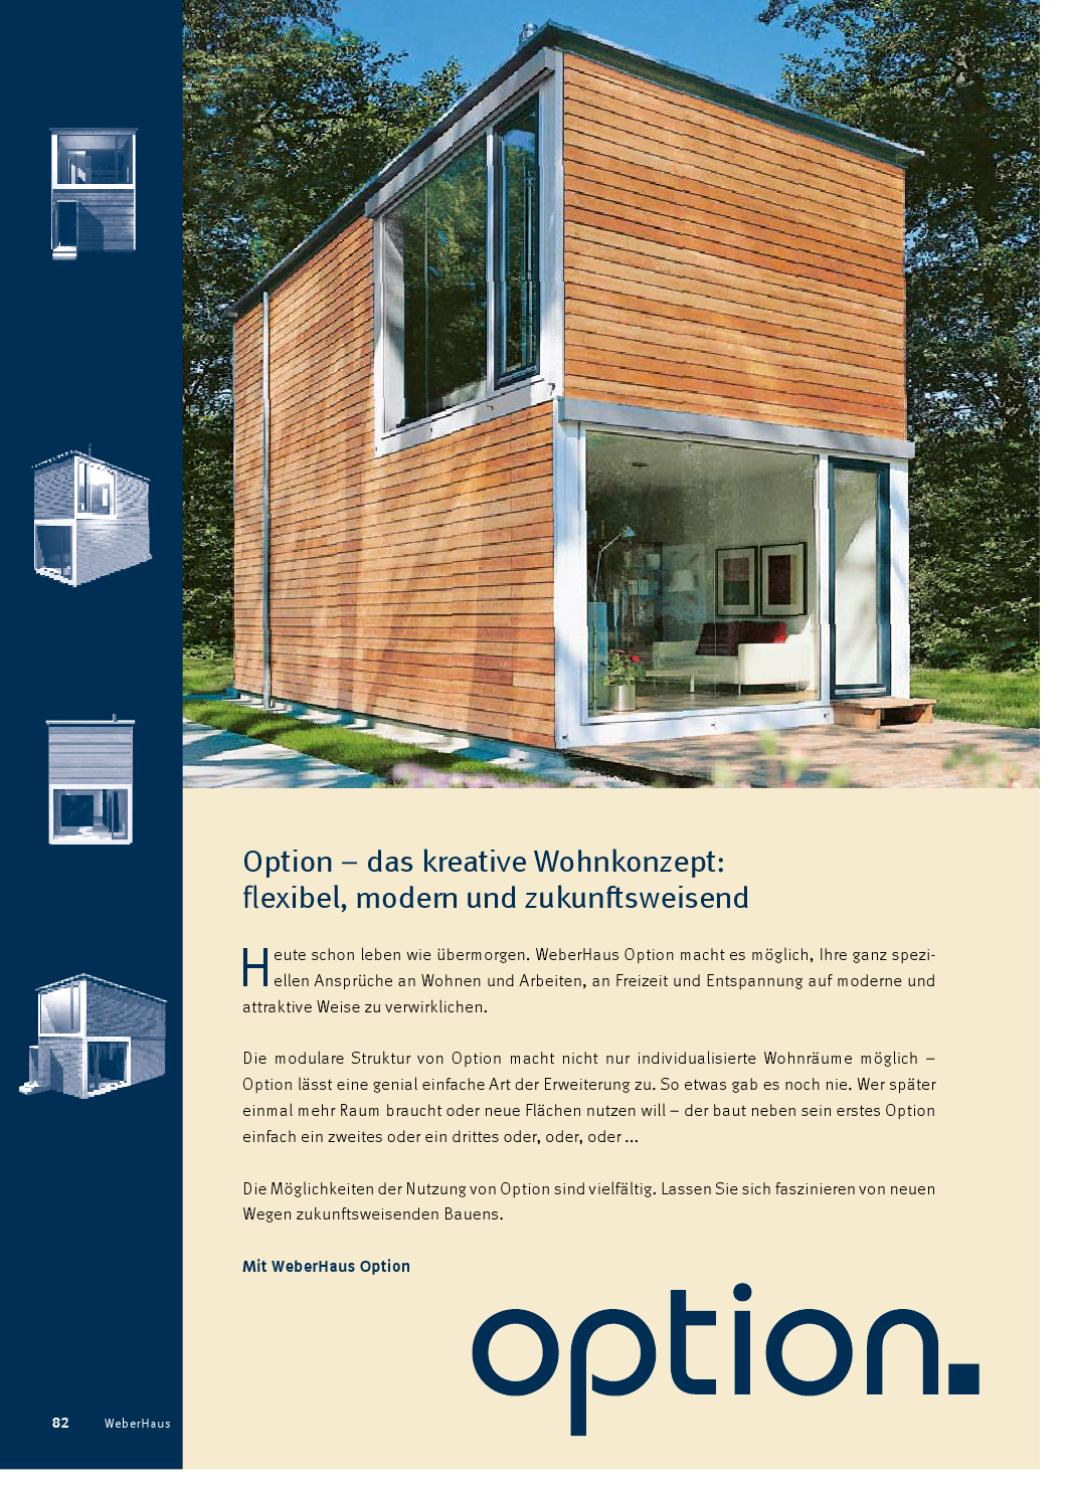 Option House By Weberhaus Suisse Romande Page 2 Issuu